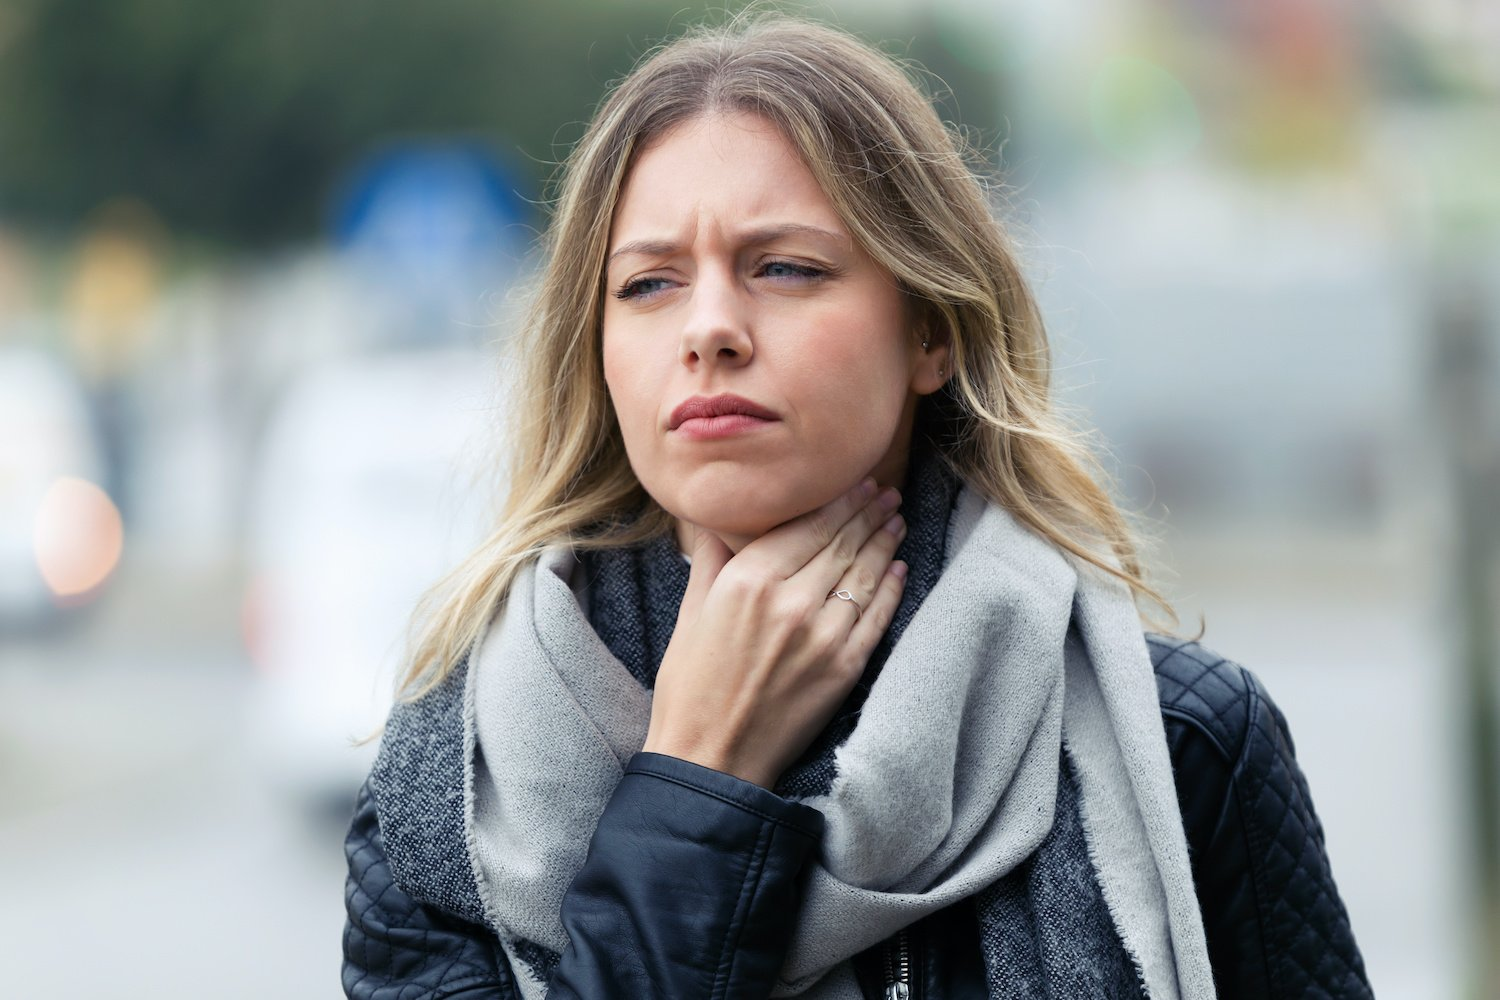 silent reflux: Woman in pain, holding up a hand to her throat